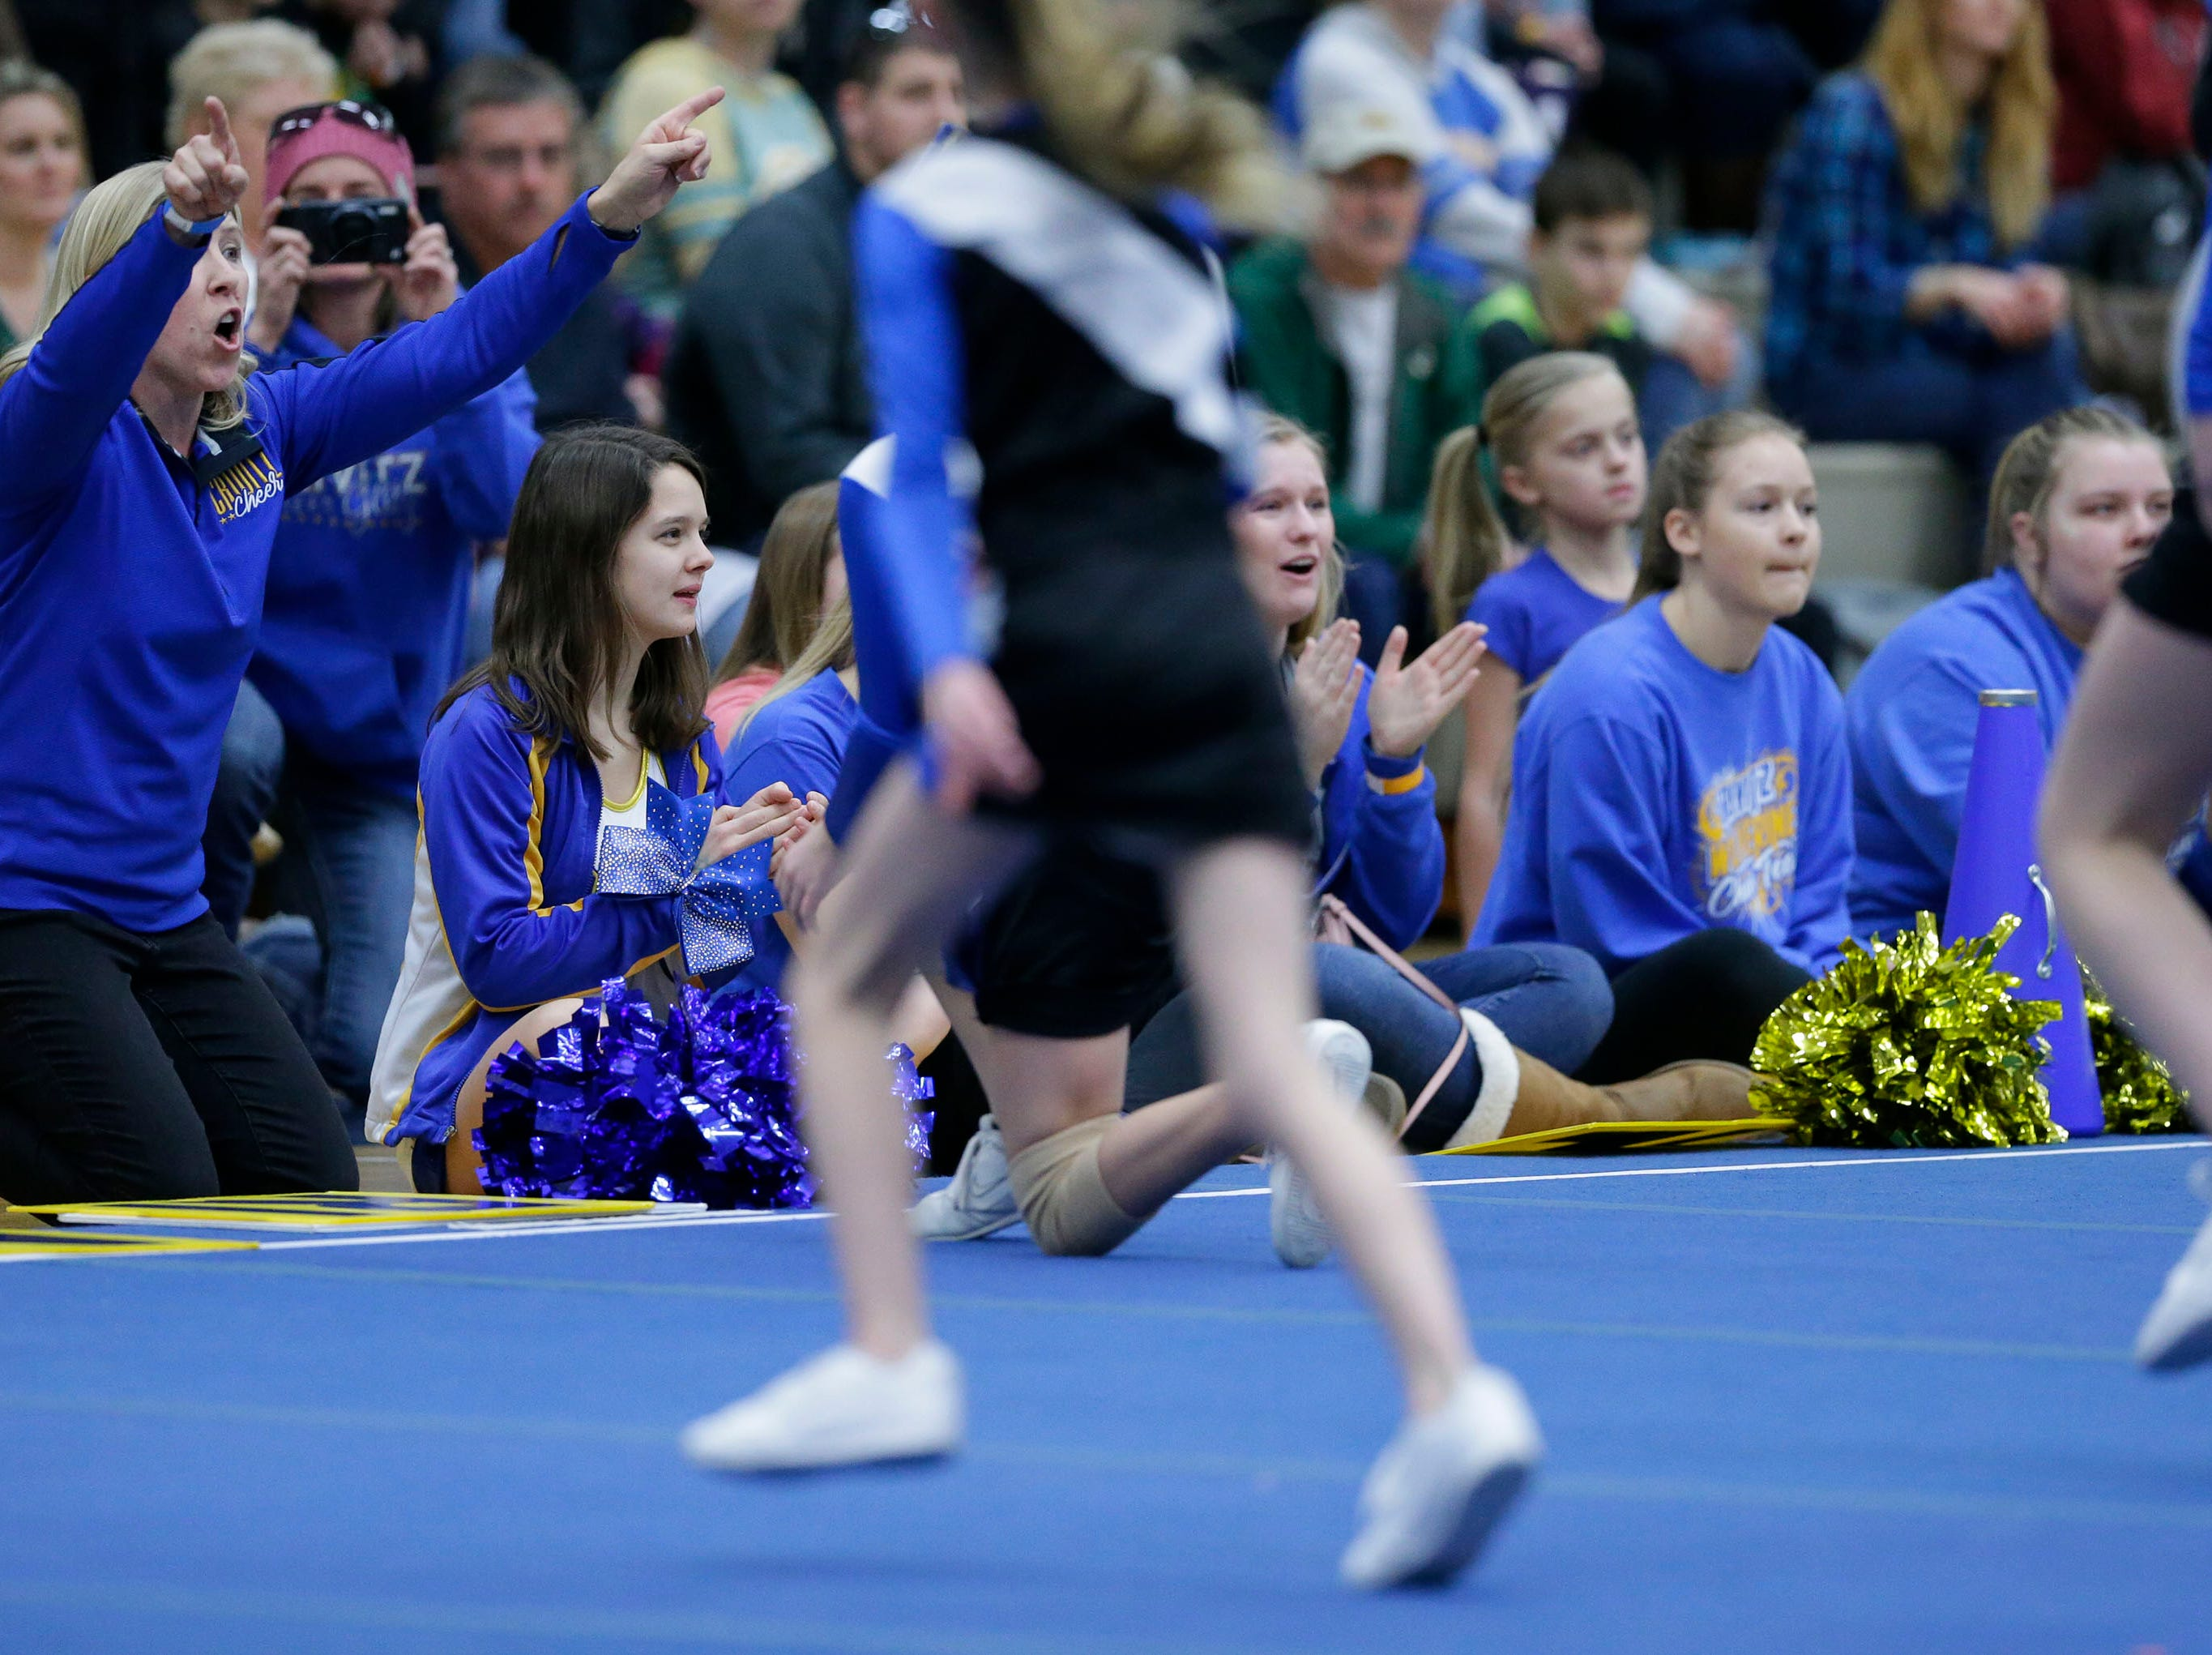 A Crivitz team gets coaching and cheering from the sidelines as the Lightning Bolt Explosion Cheer and Dance competition takes place Saturday, January 5, 2019, at Appleton North High School in Appleton, Wis.